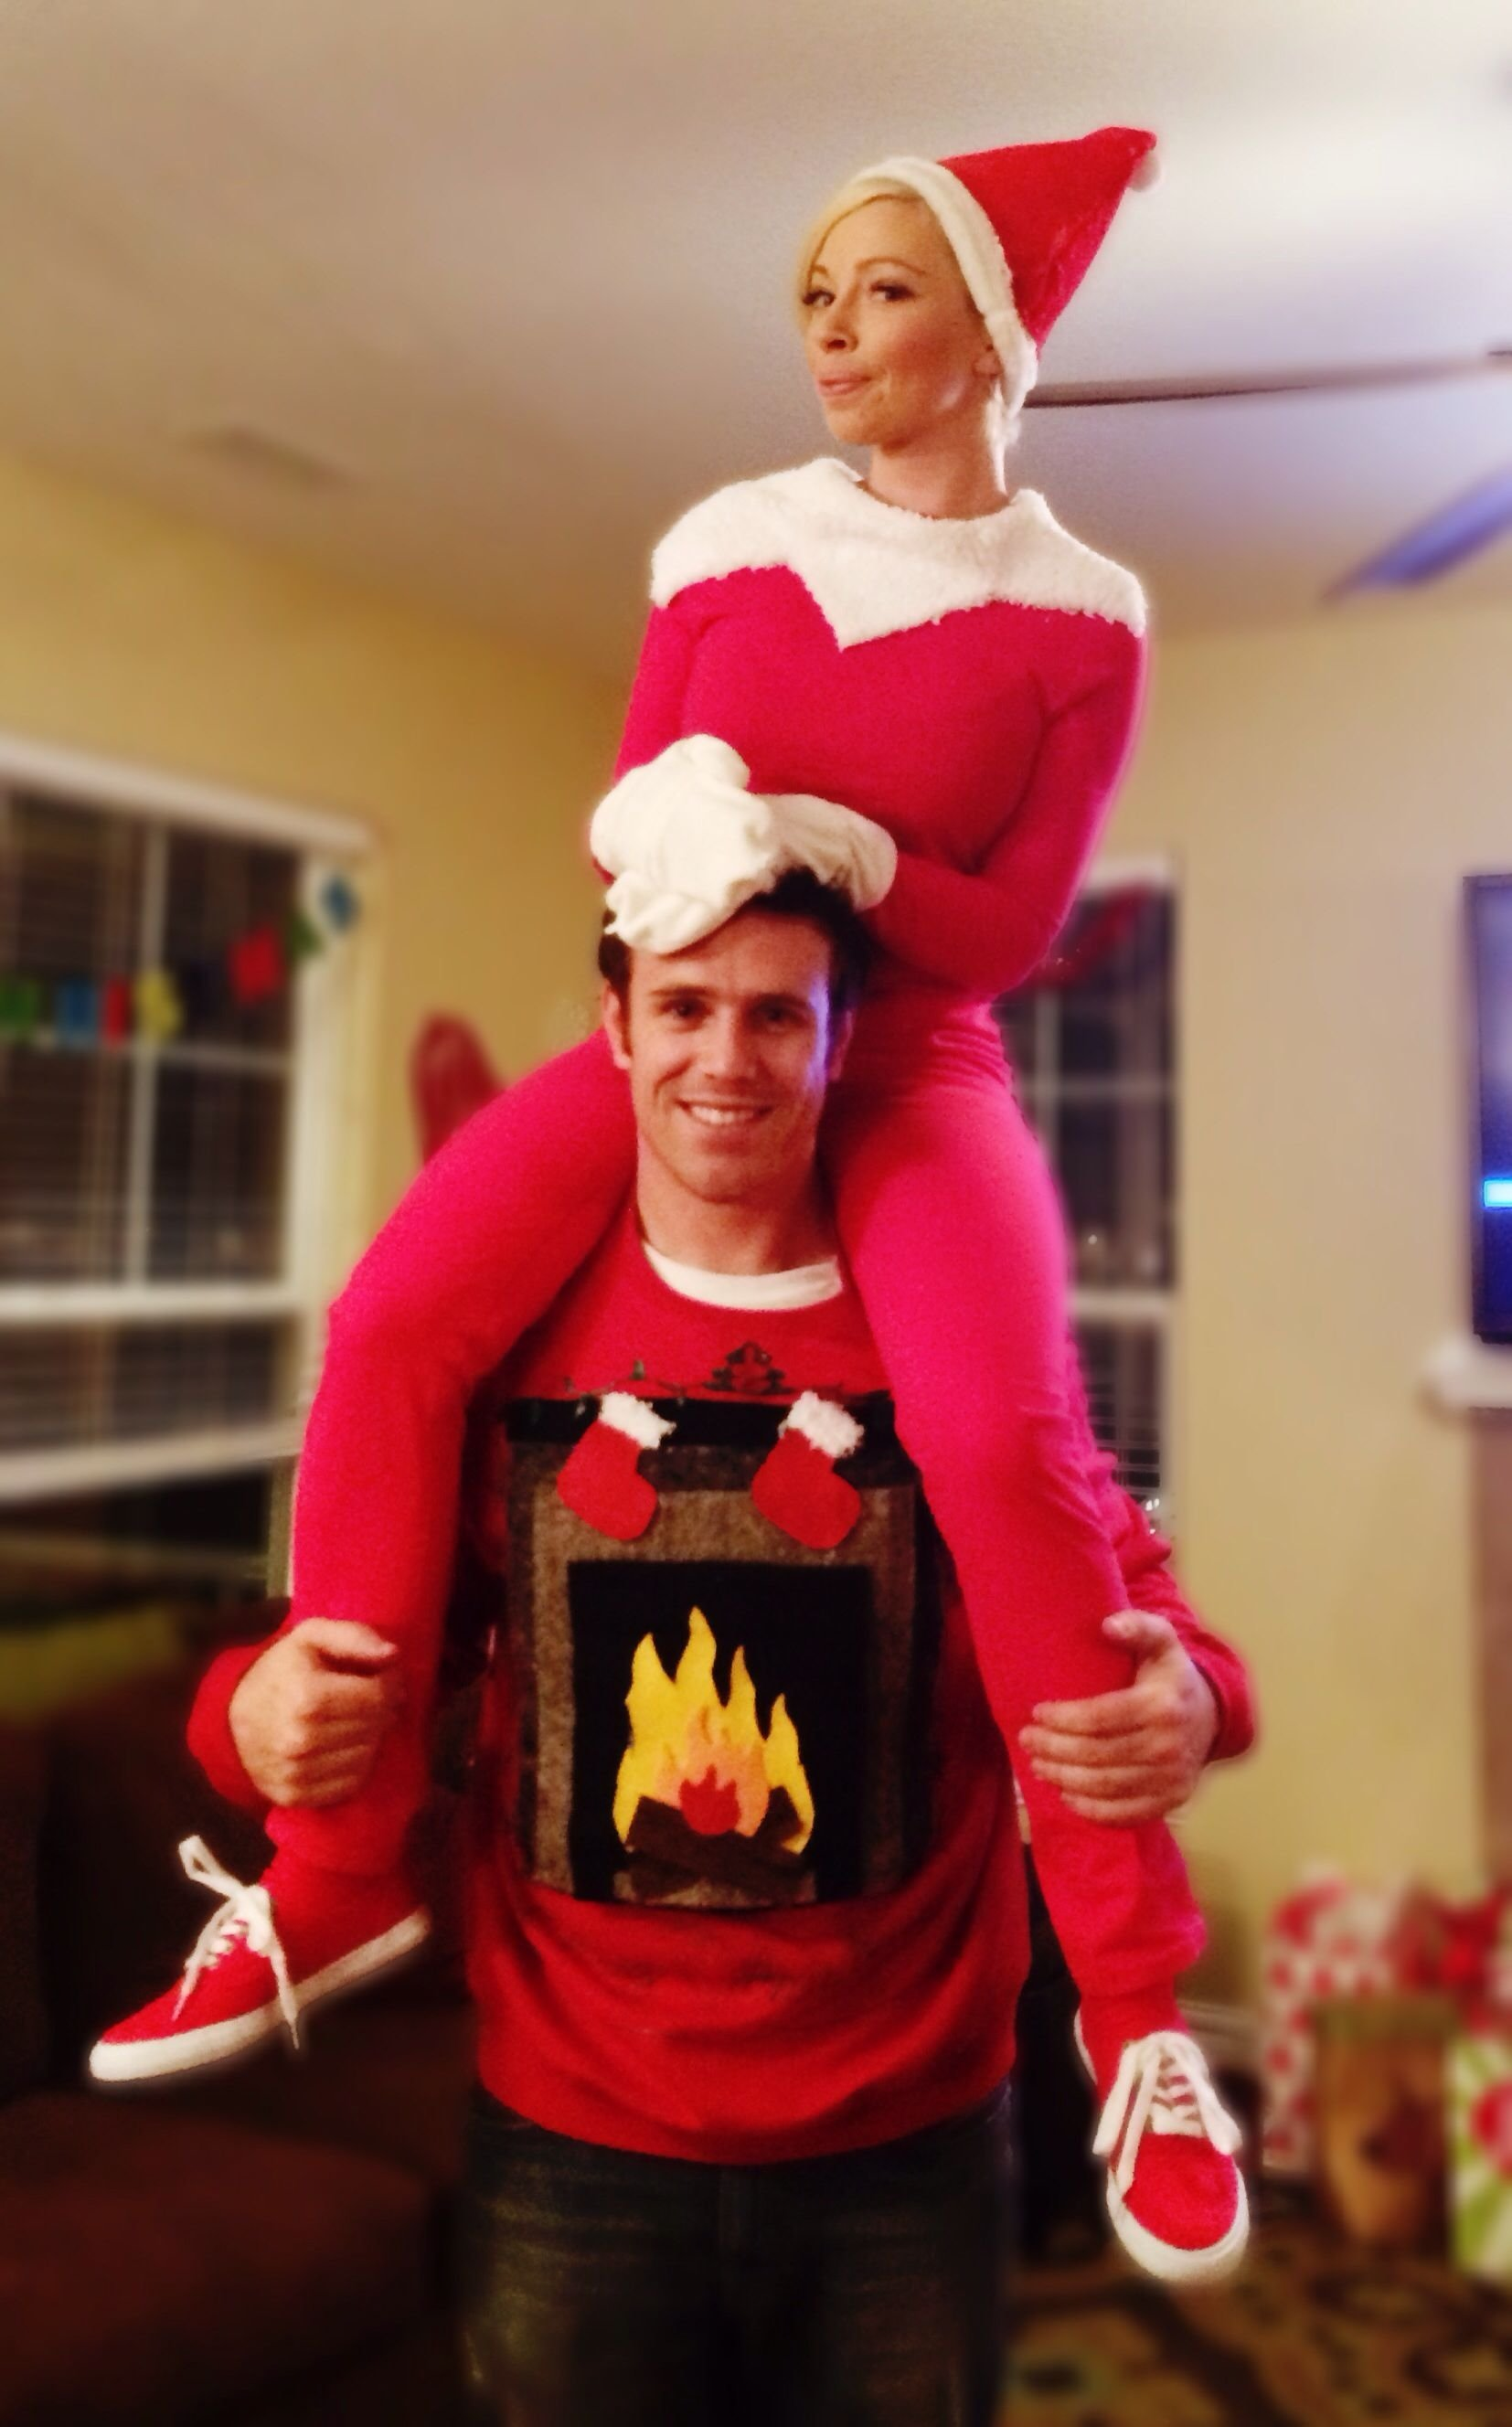 10 Awesome Ugly Christmas Sweater Ideas For Couples elf on the shelf diy costume for ugly christmas sweater party ugly 1 2020